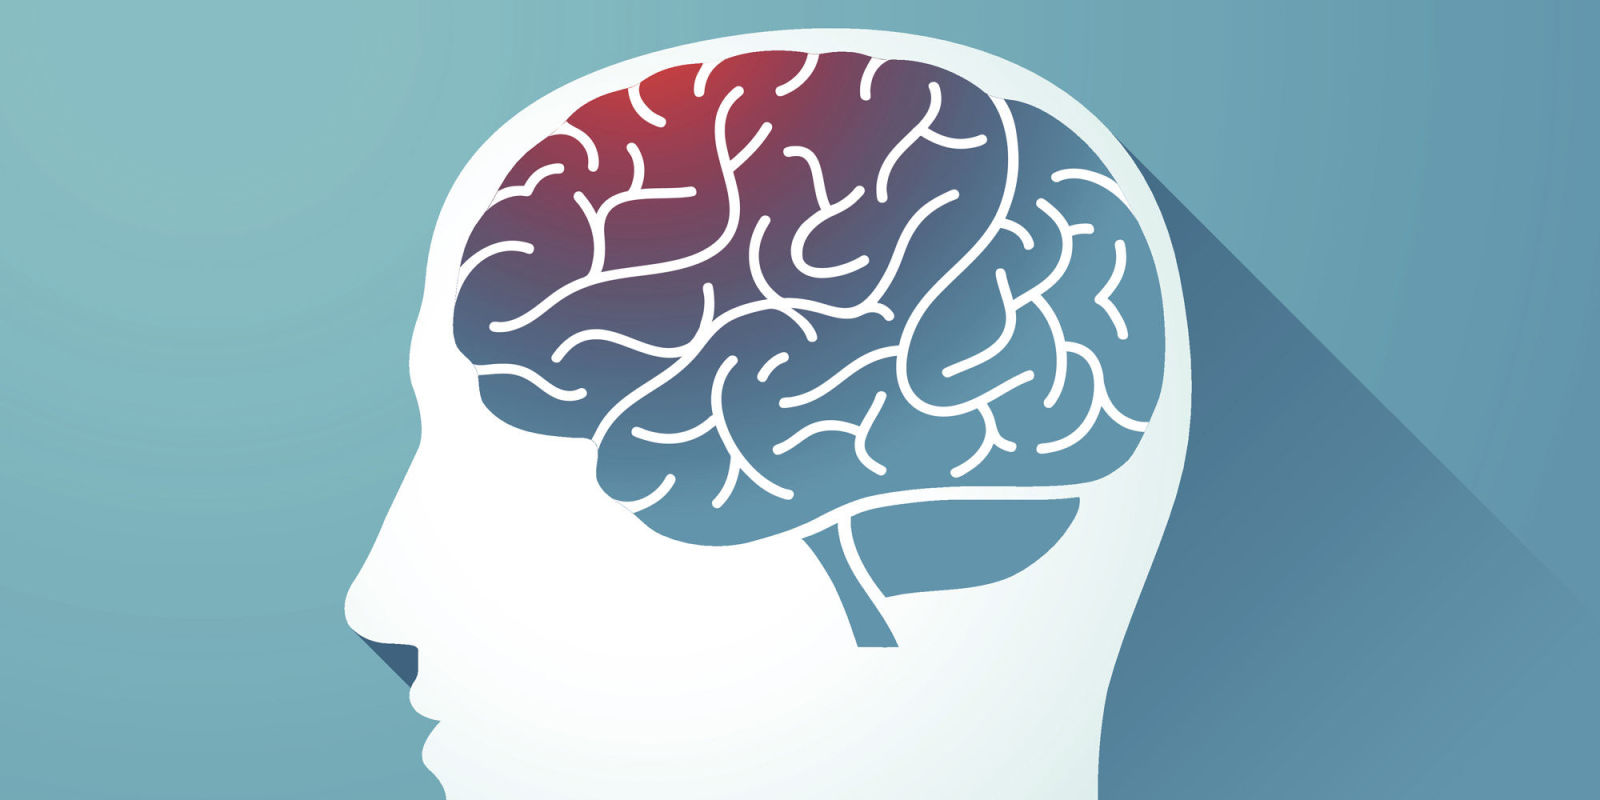 What activity, practised daily, has been scientifically proven to keep your brain 10 years younger?